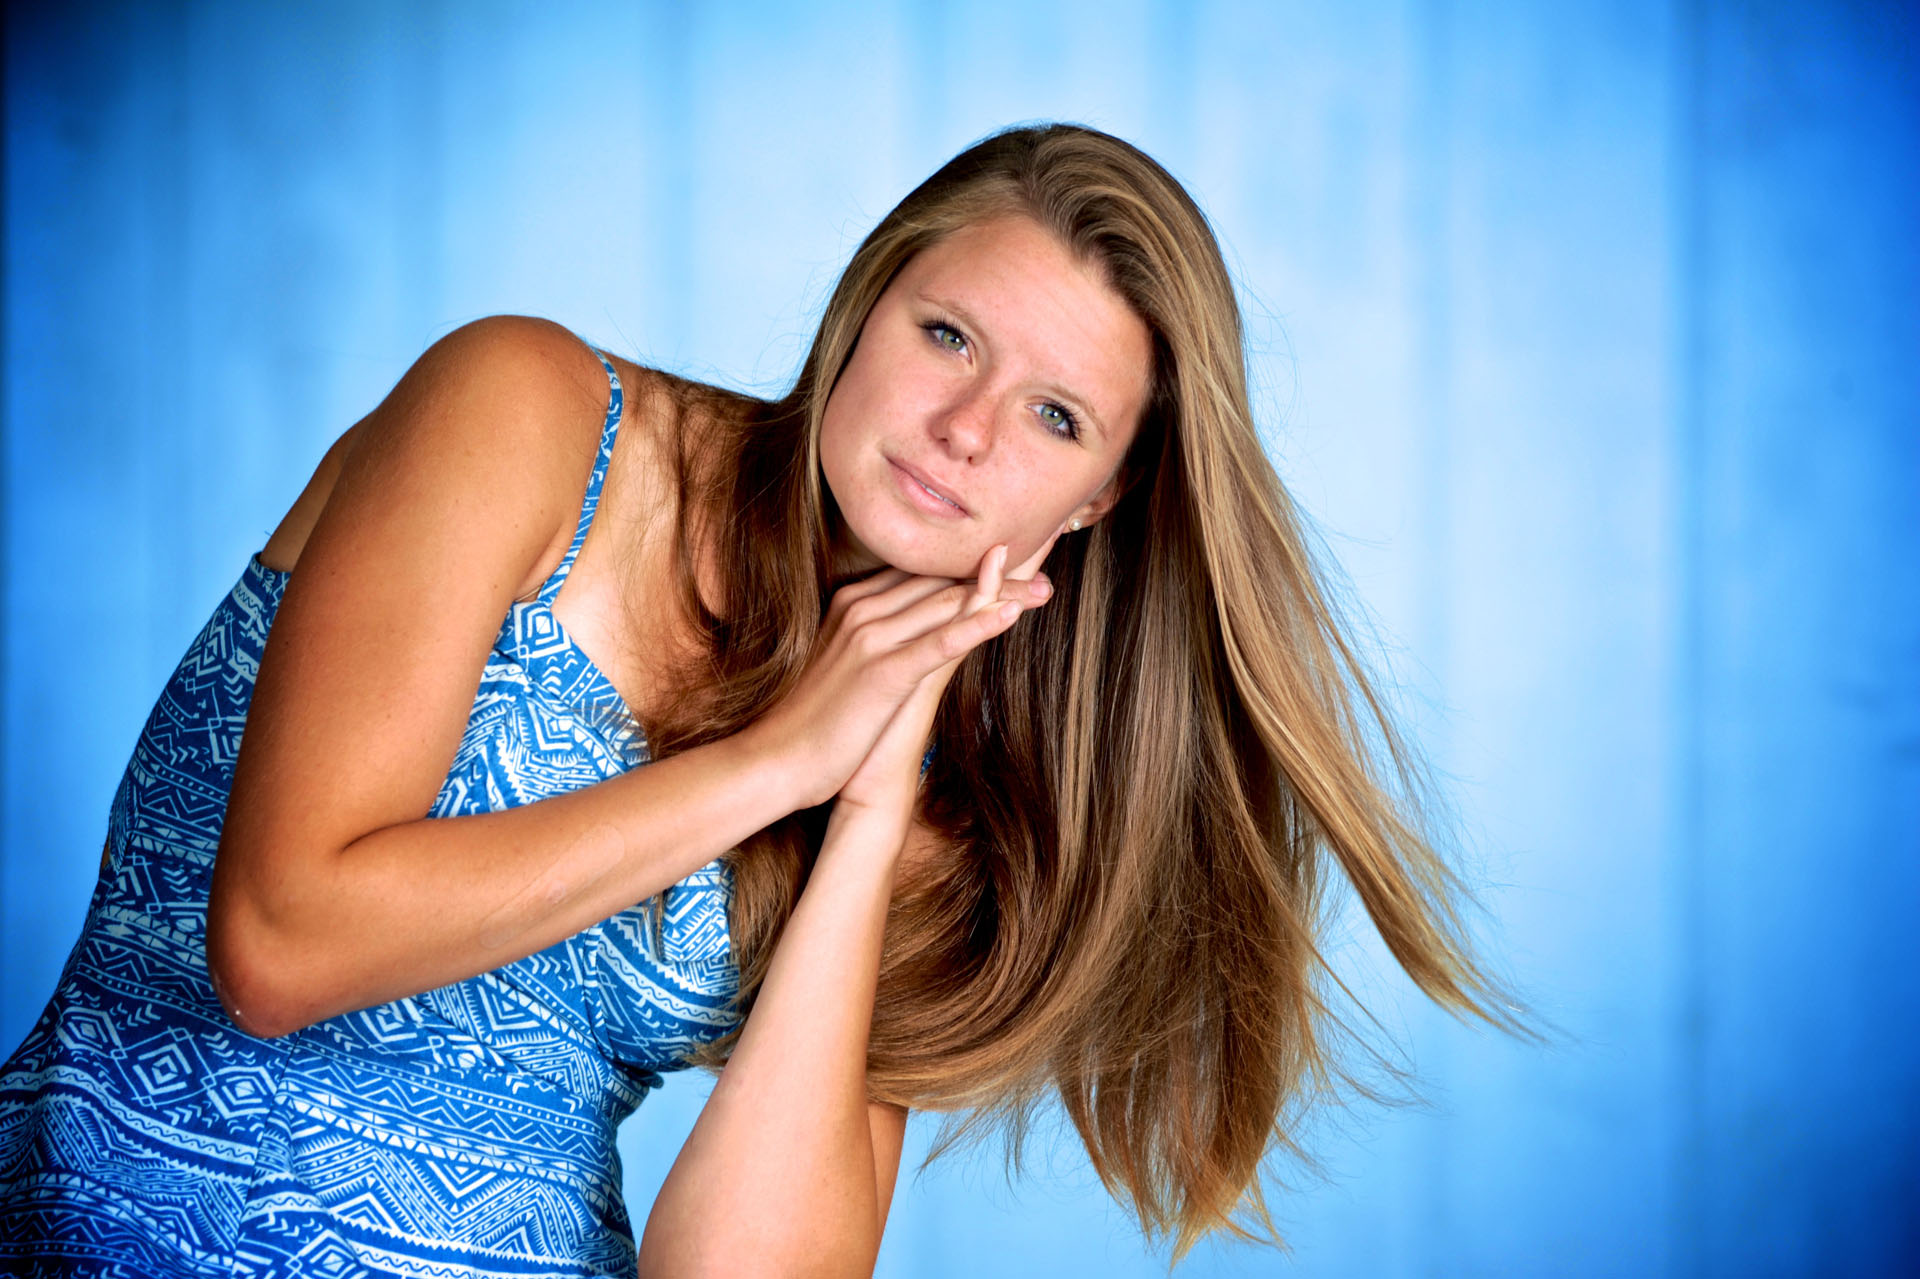 Troy , Michigan senior photographer's portrait of the high school senior posing for their senior pictures in Troy, Michigan.